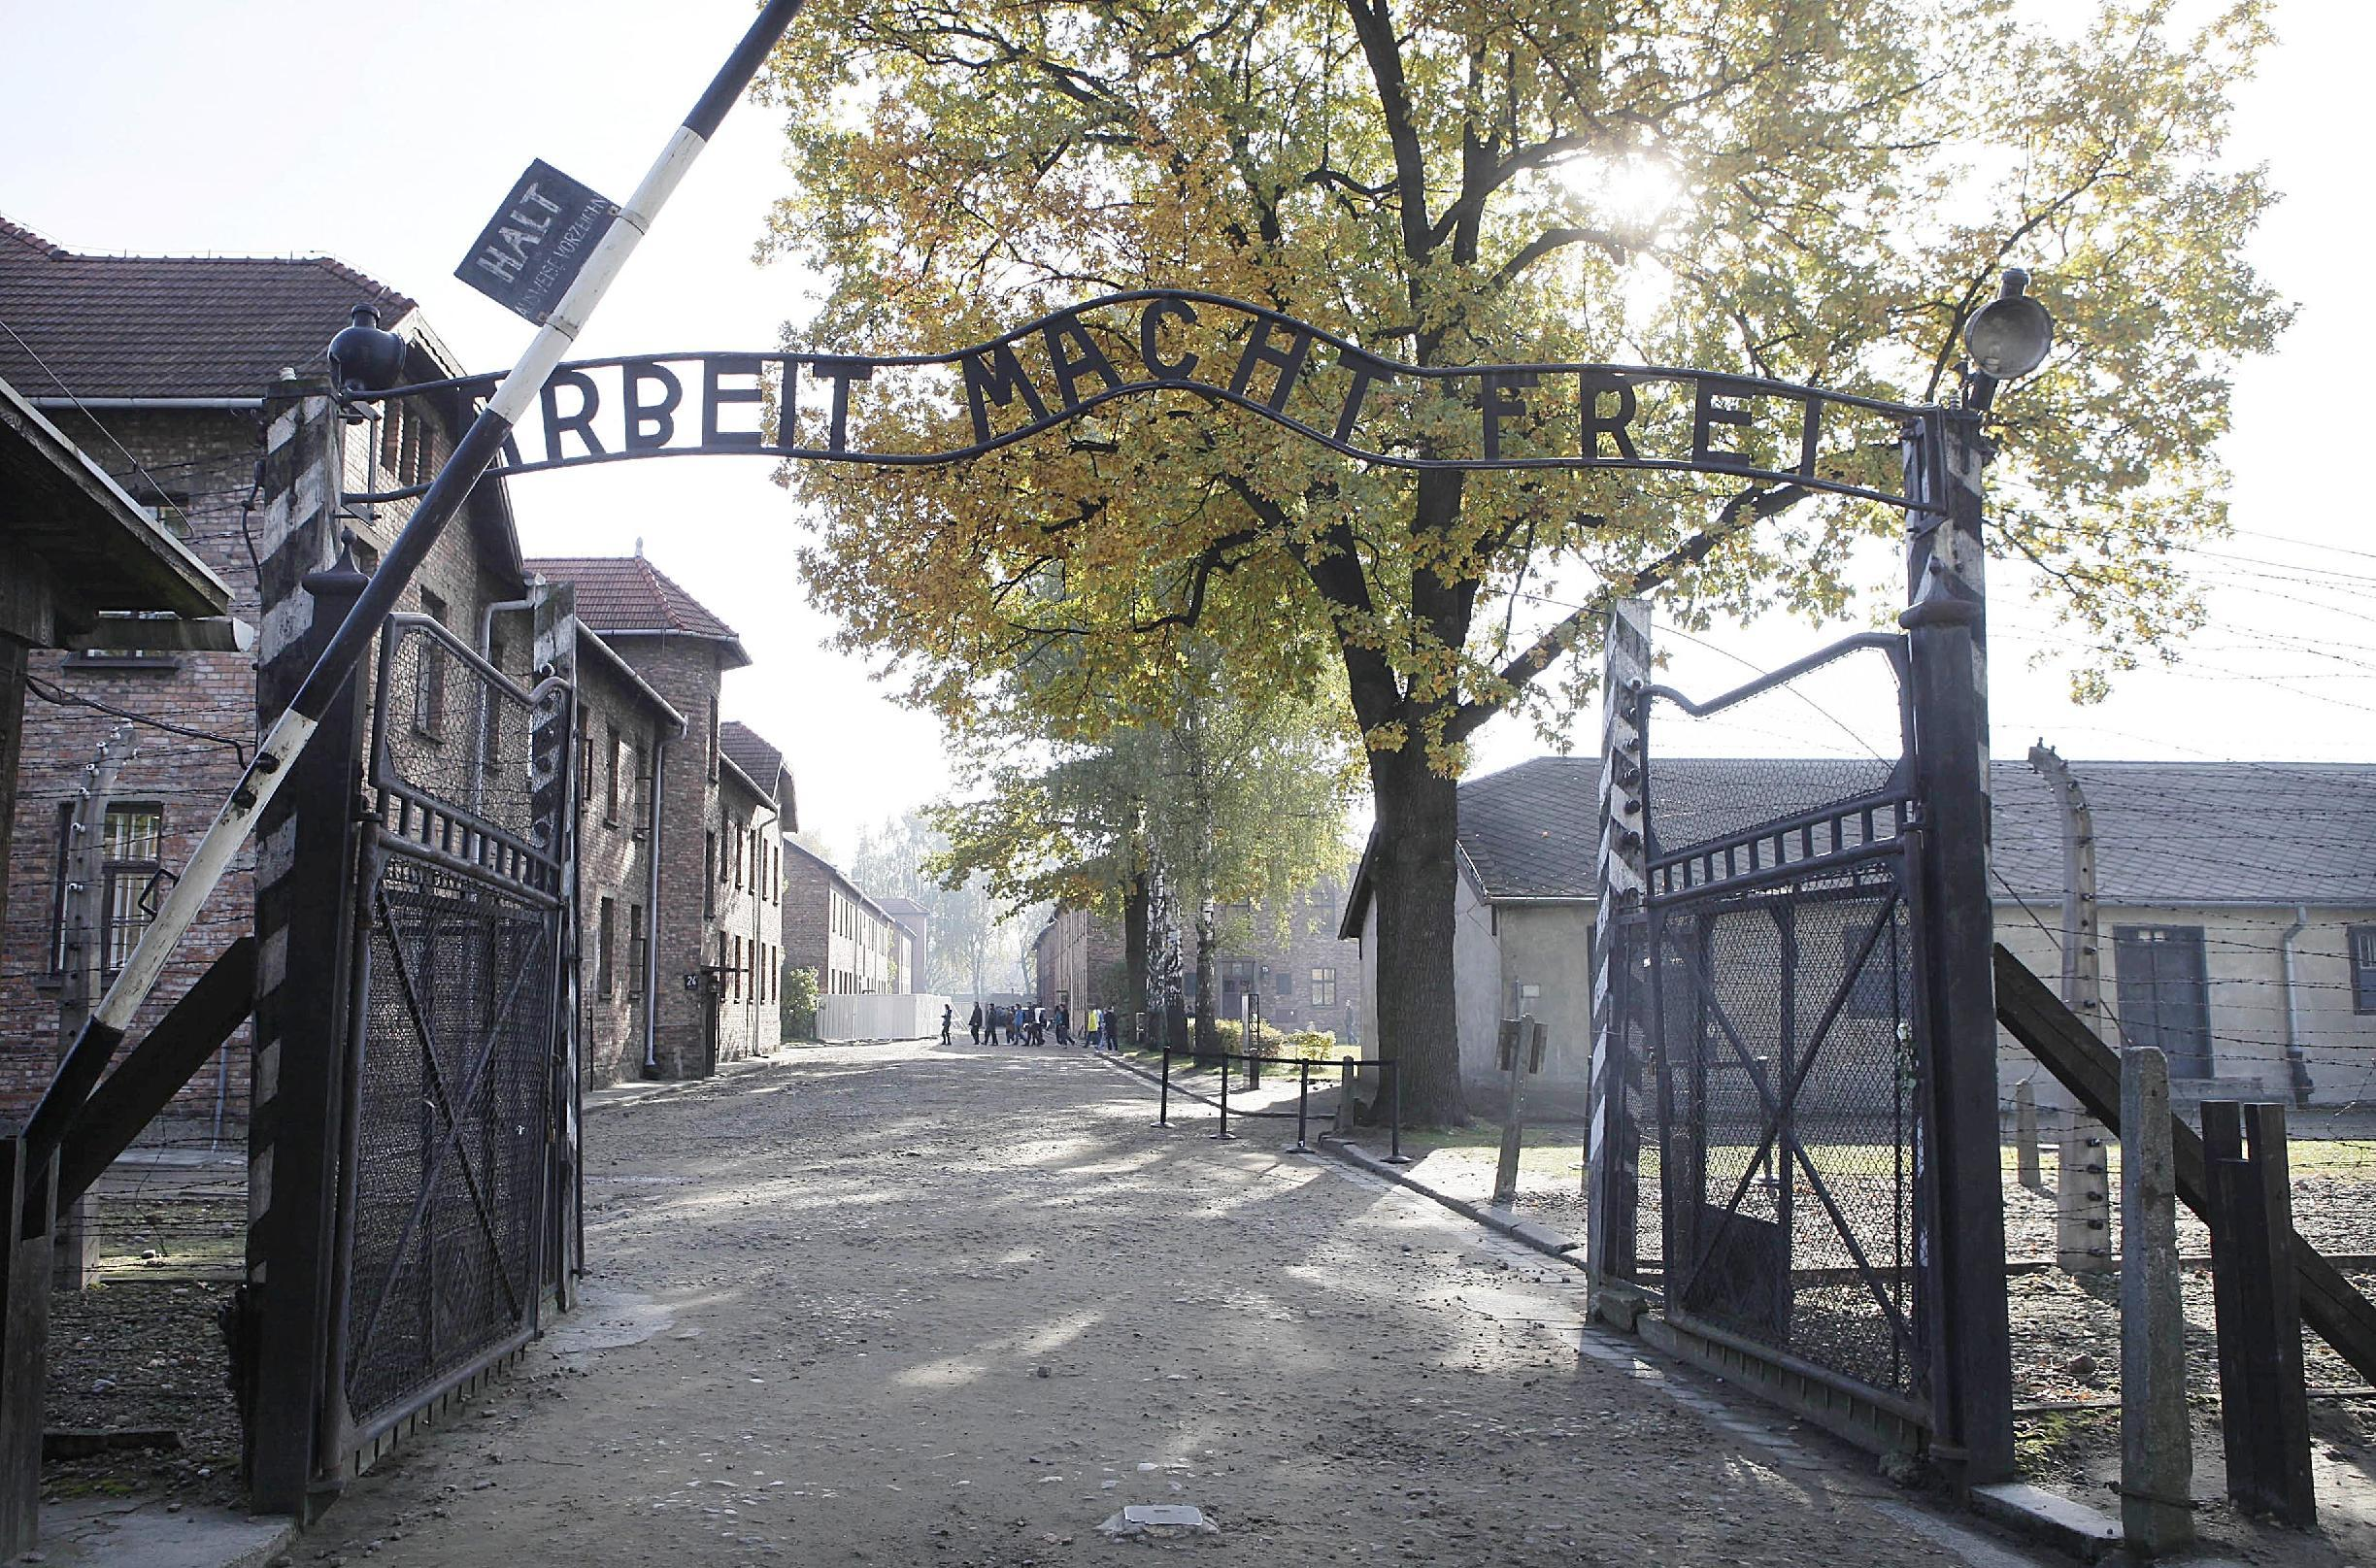 Auschwitz museum asks Germans, Austrians to donate items